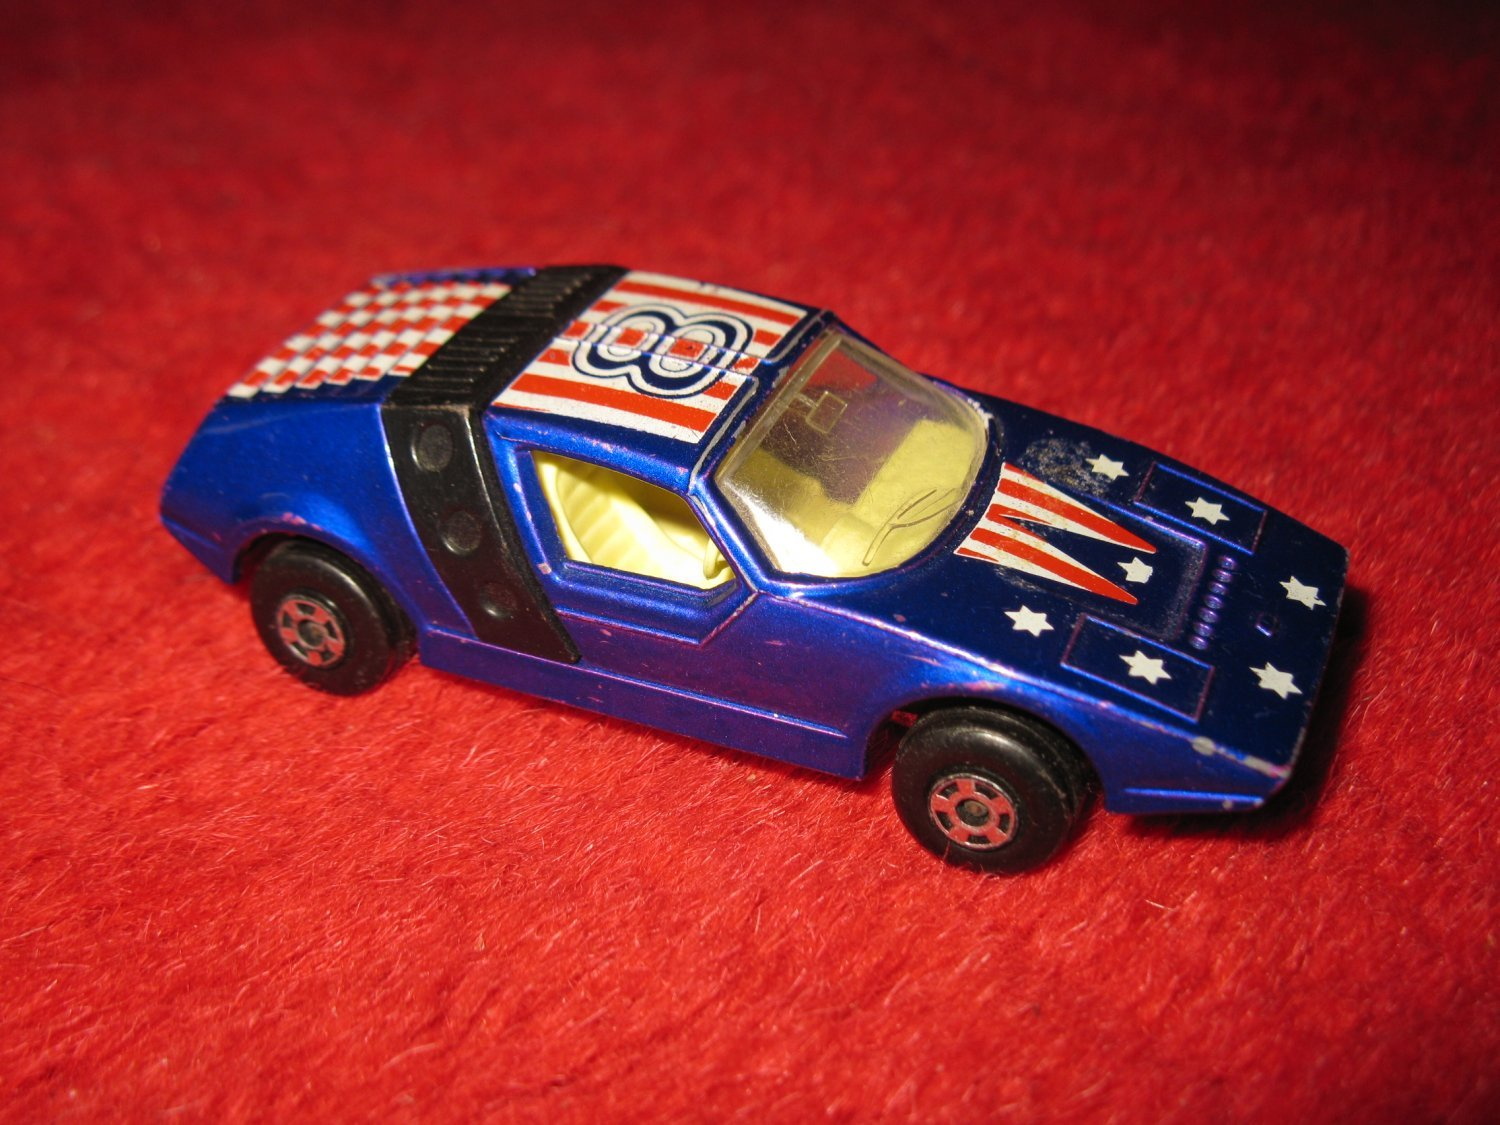 1972 Lesney / Matchbox Die Cast Car: Superfast #41 Siva Spyder